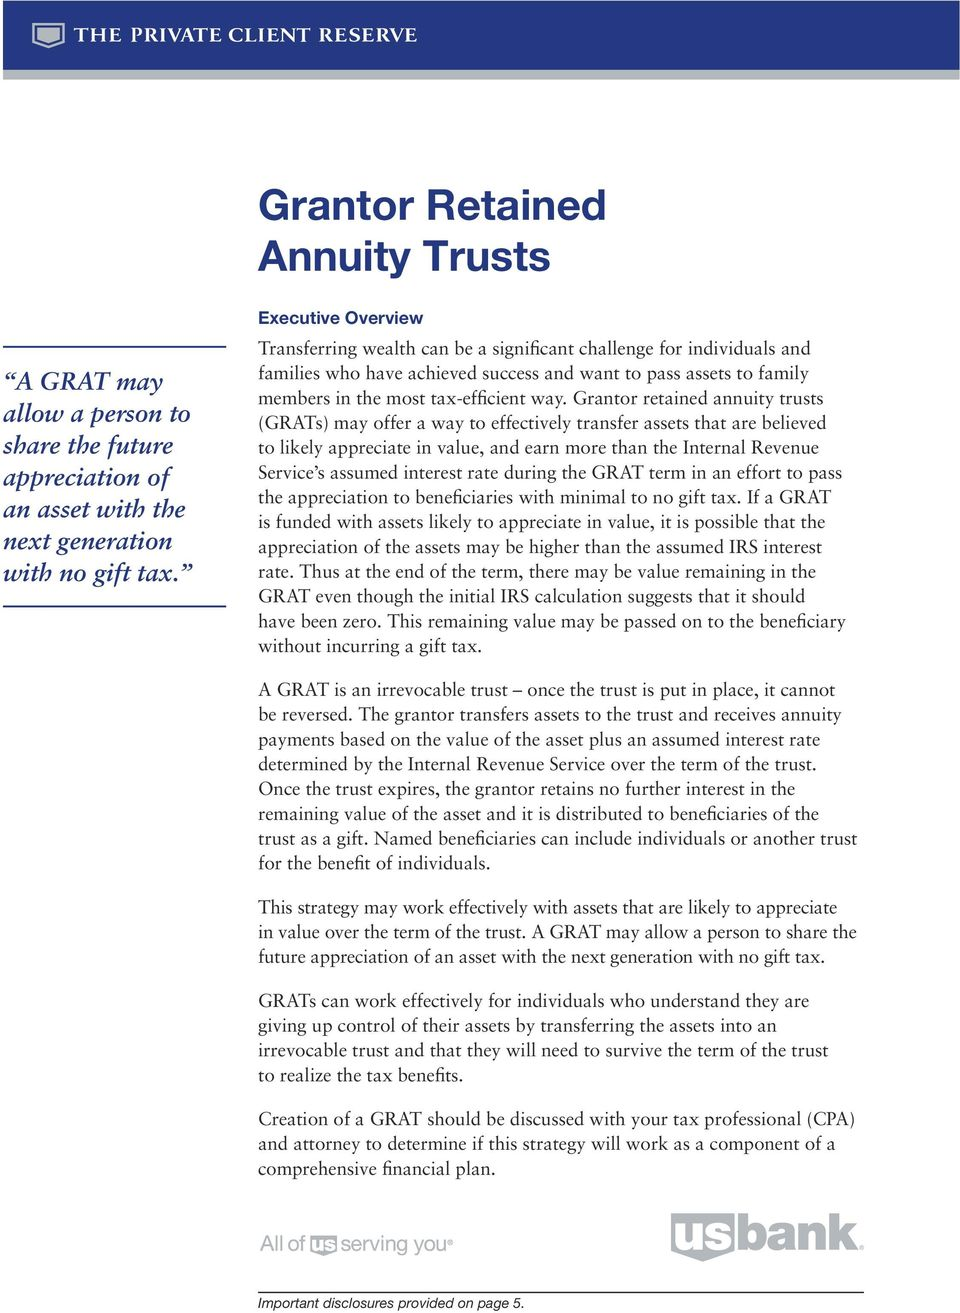 Grantor retained annuity trusts (GRATs) may offer a way to effectively transfer assets that are believed to likely appreciate in value, and earn more than the Internal Revenue Service s assumed